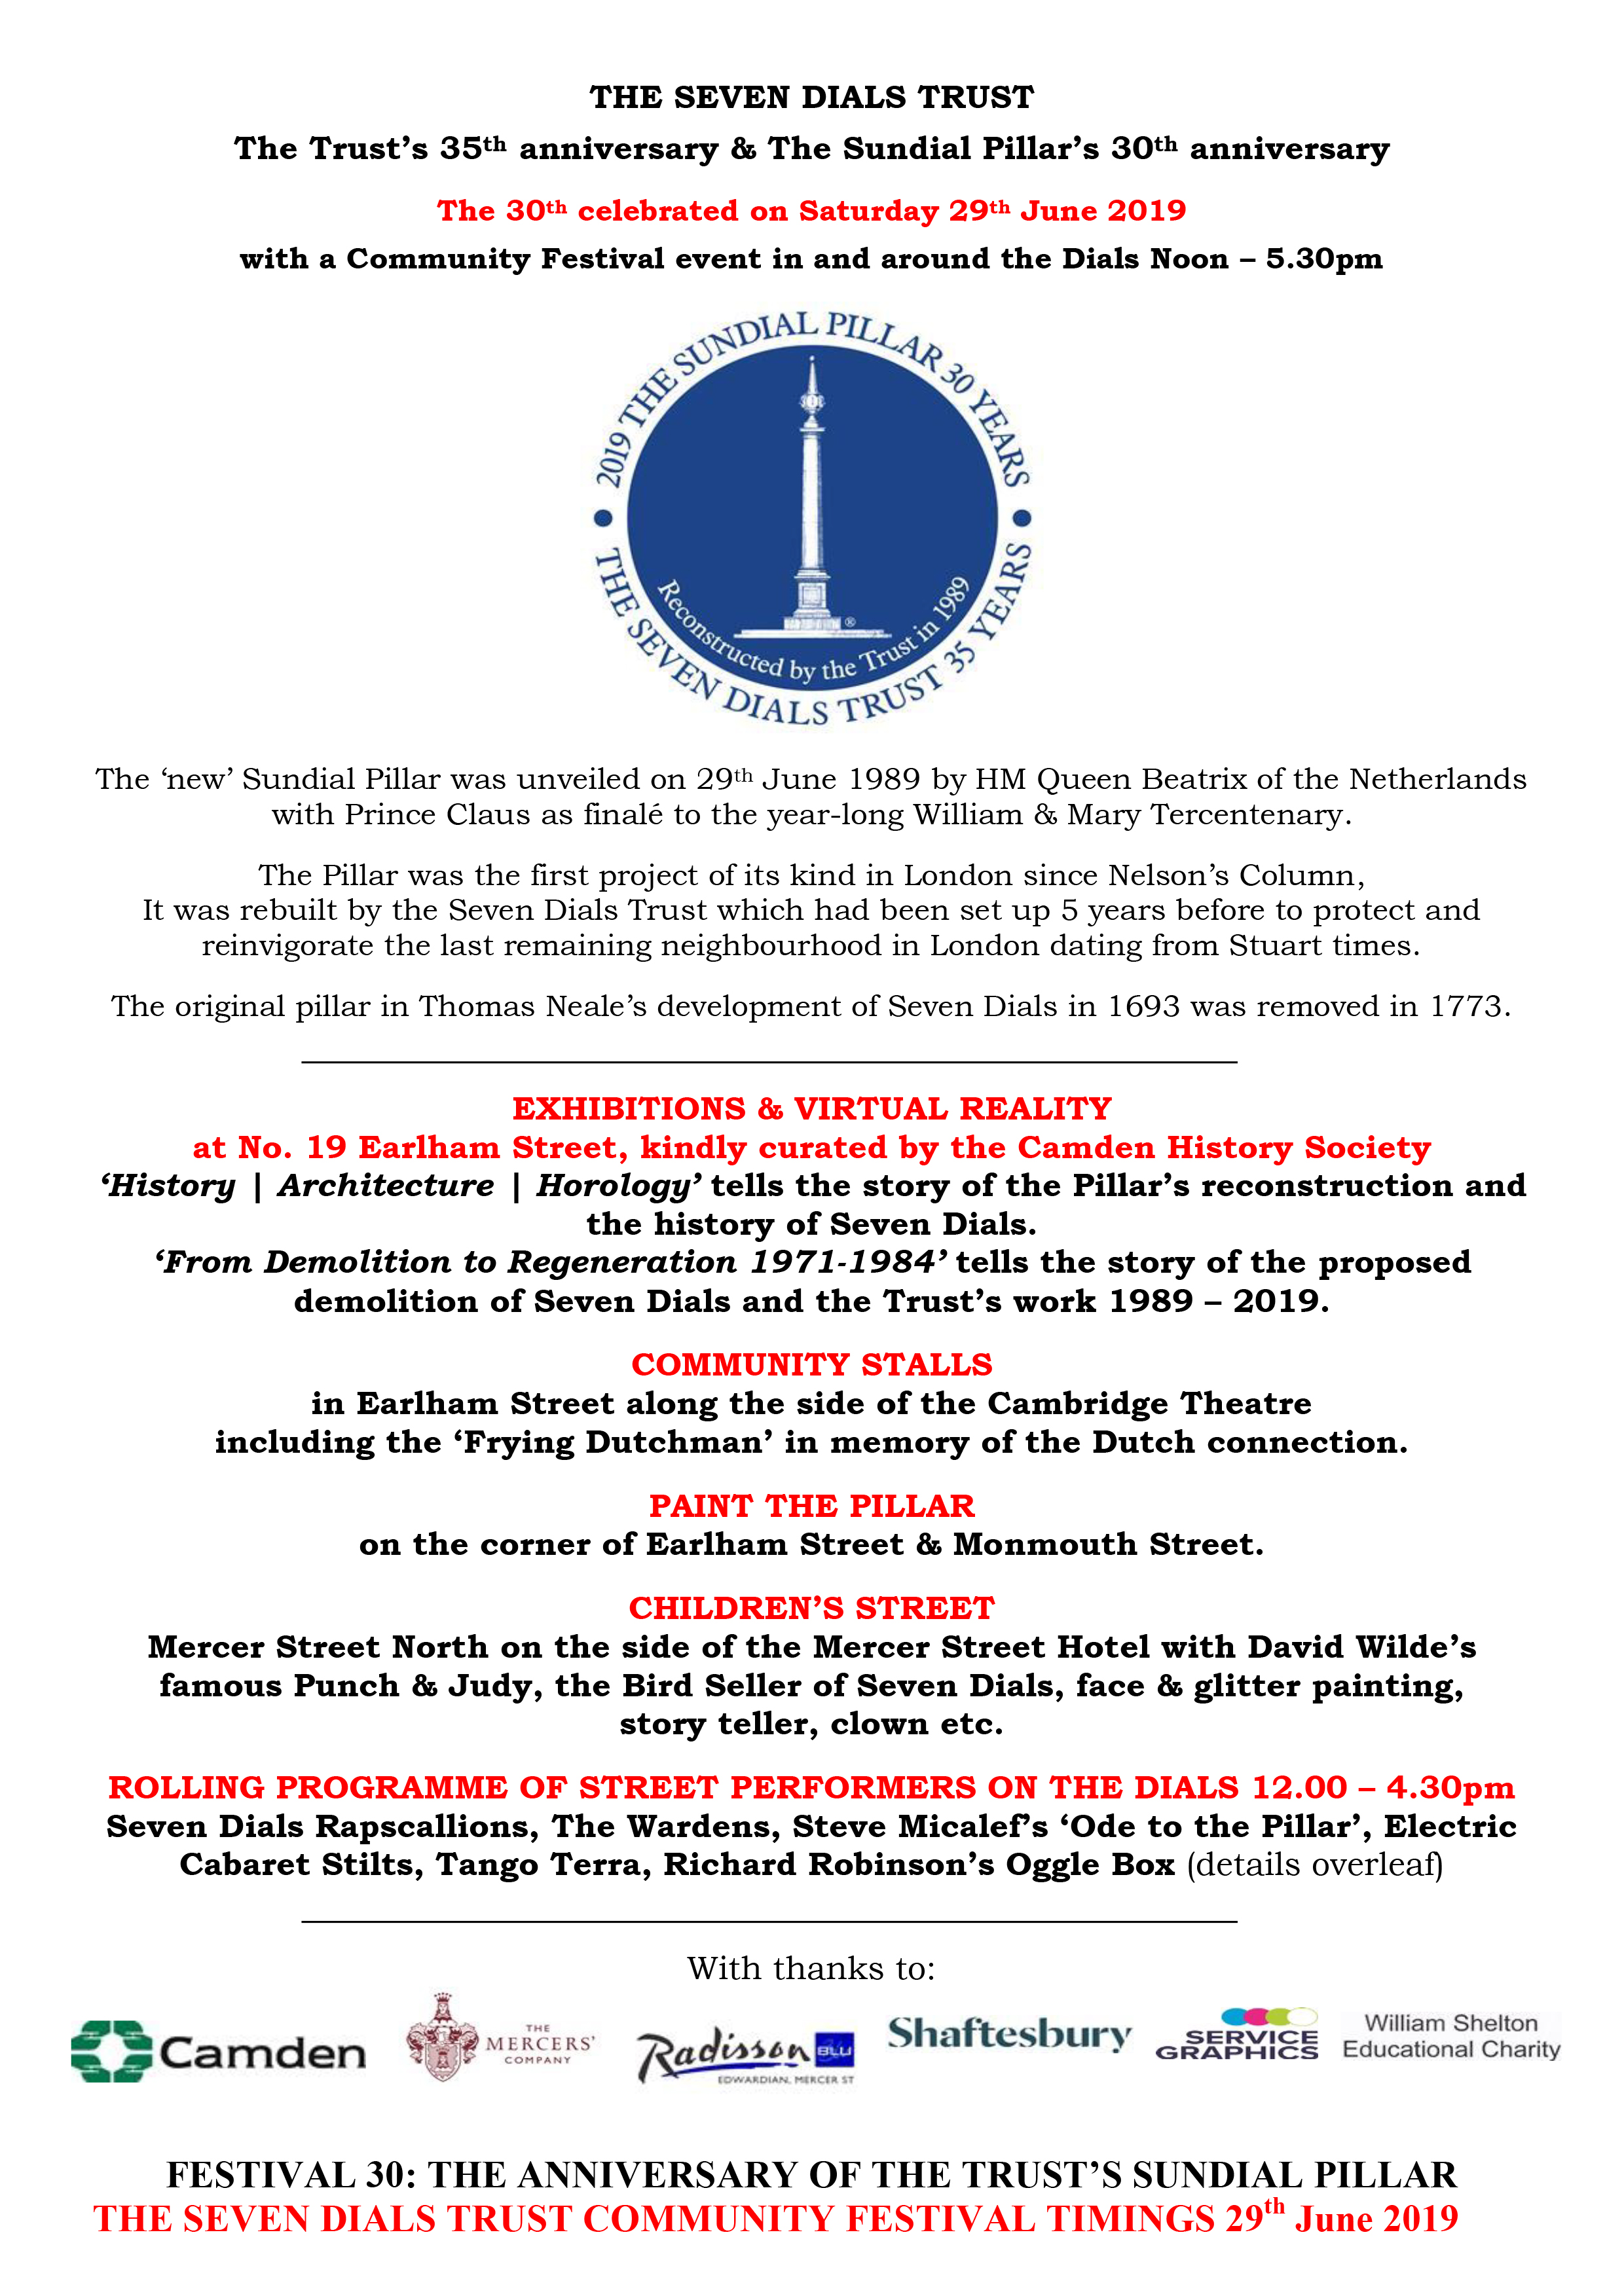 Seven Dials Monument 30th Anniversary Programme page 1